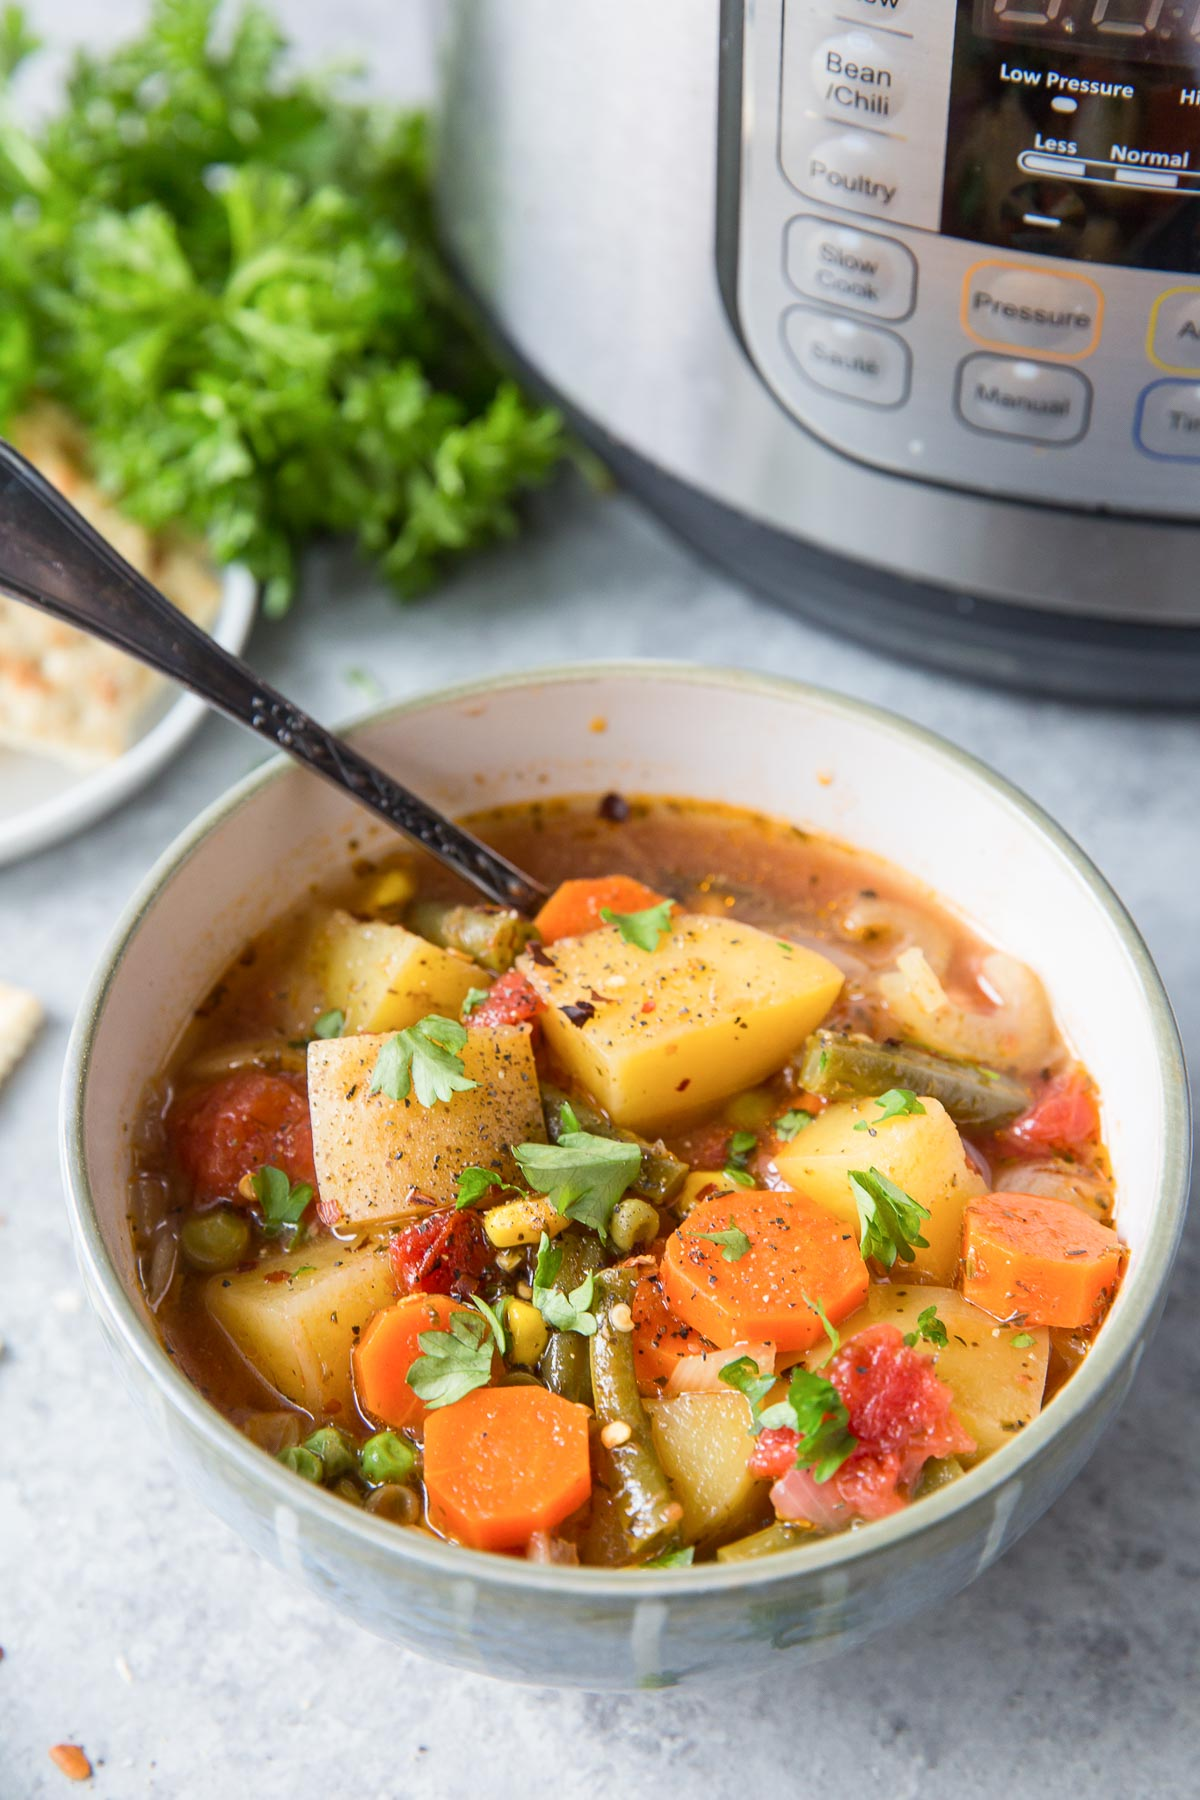 vegetable soup in a bowl with Instant Pot in background